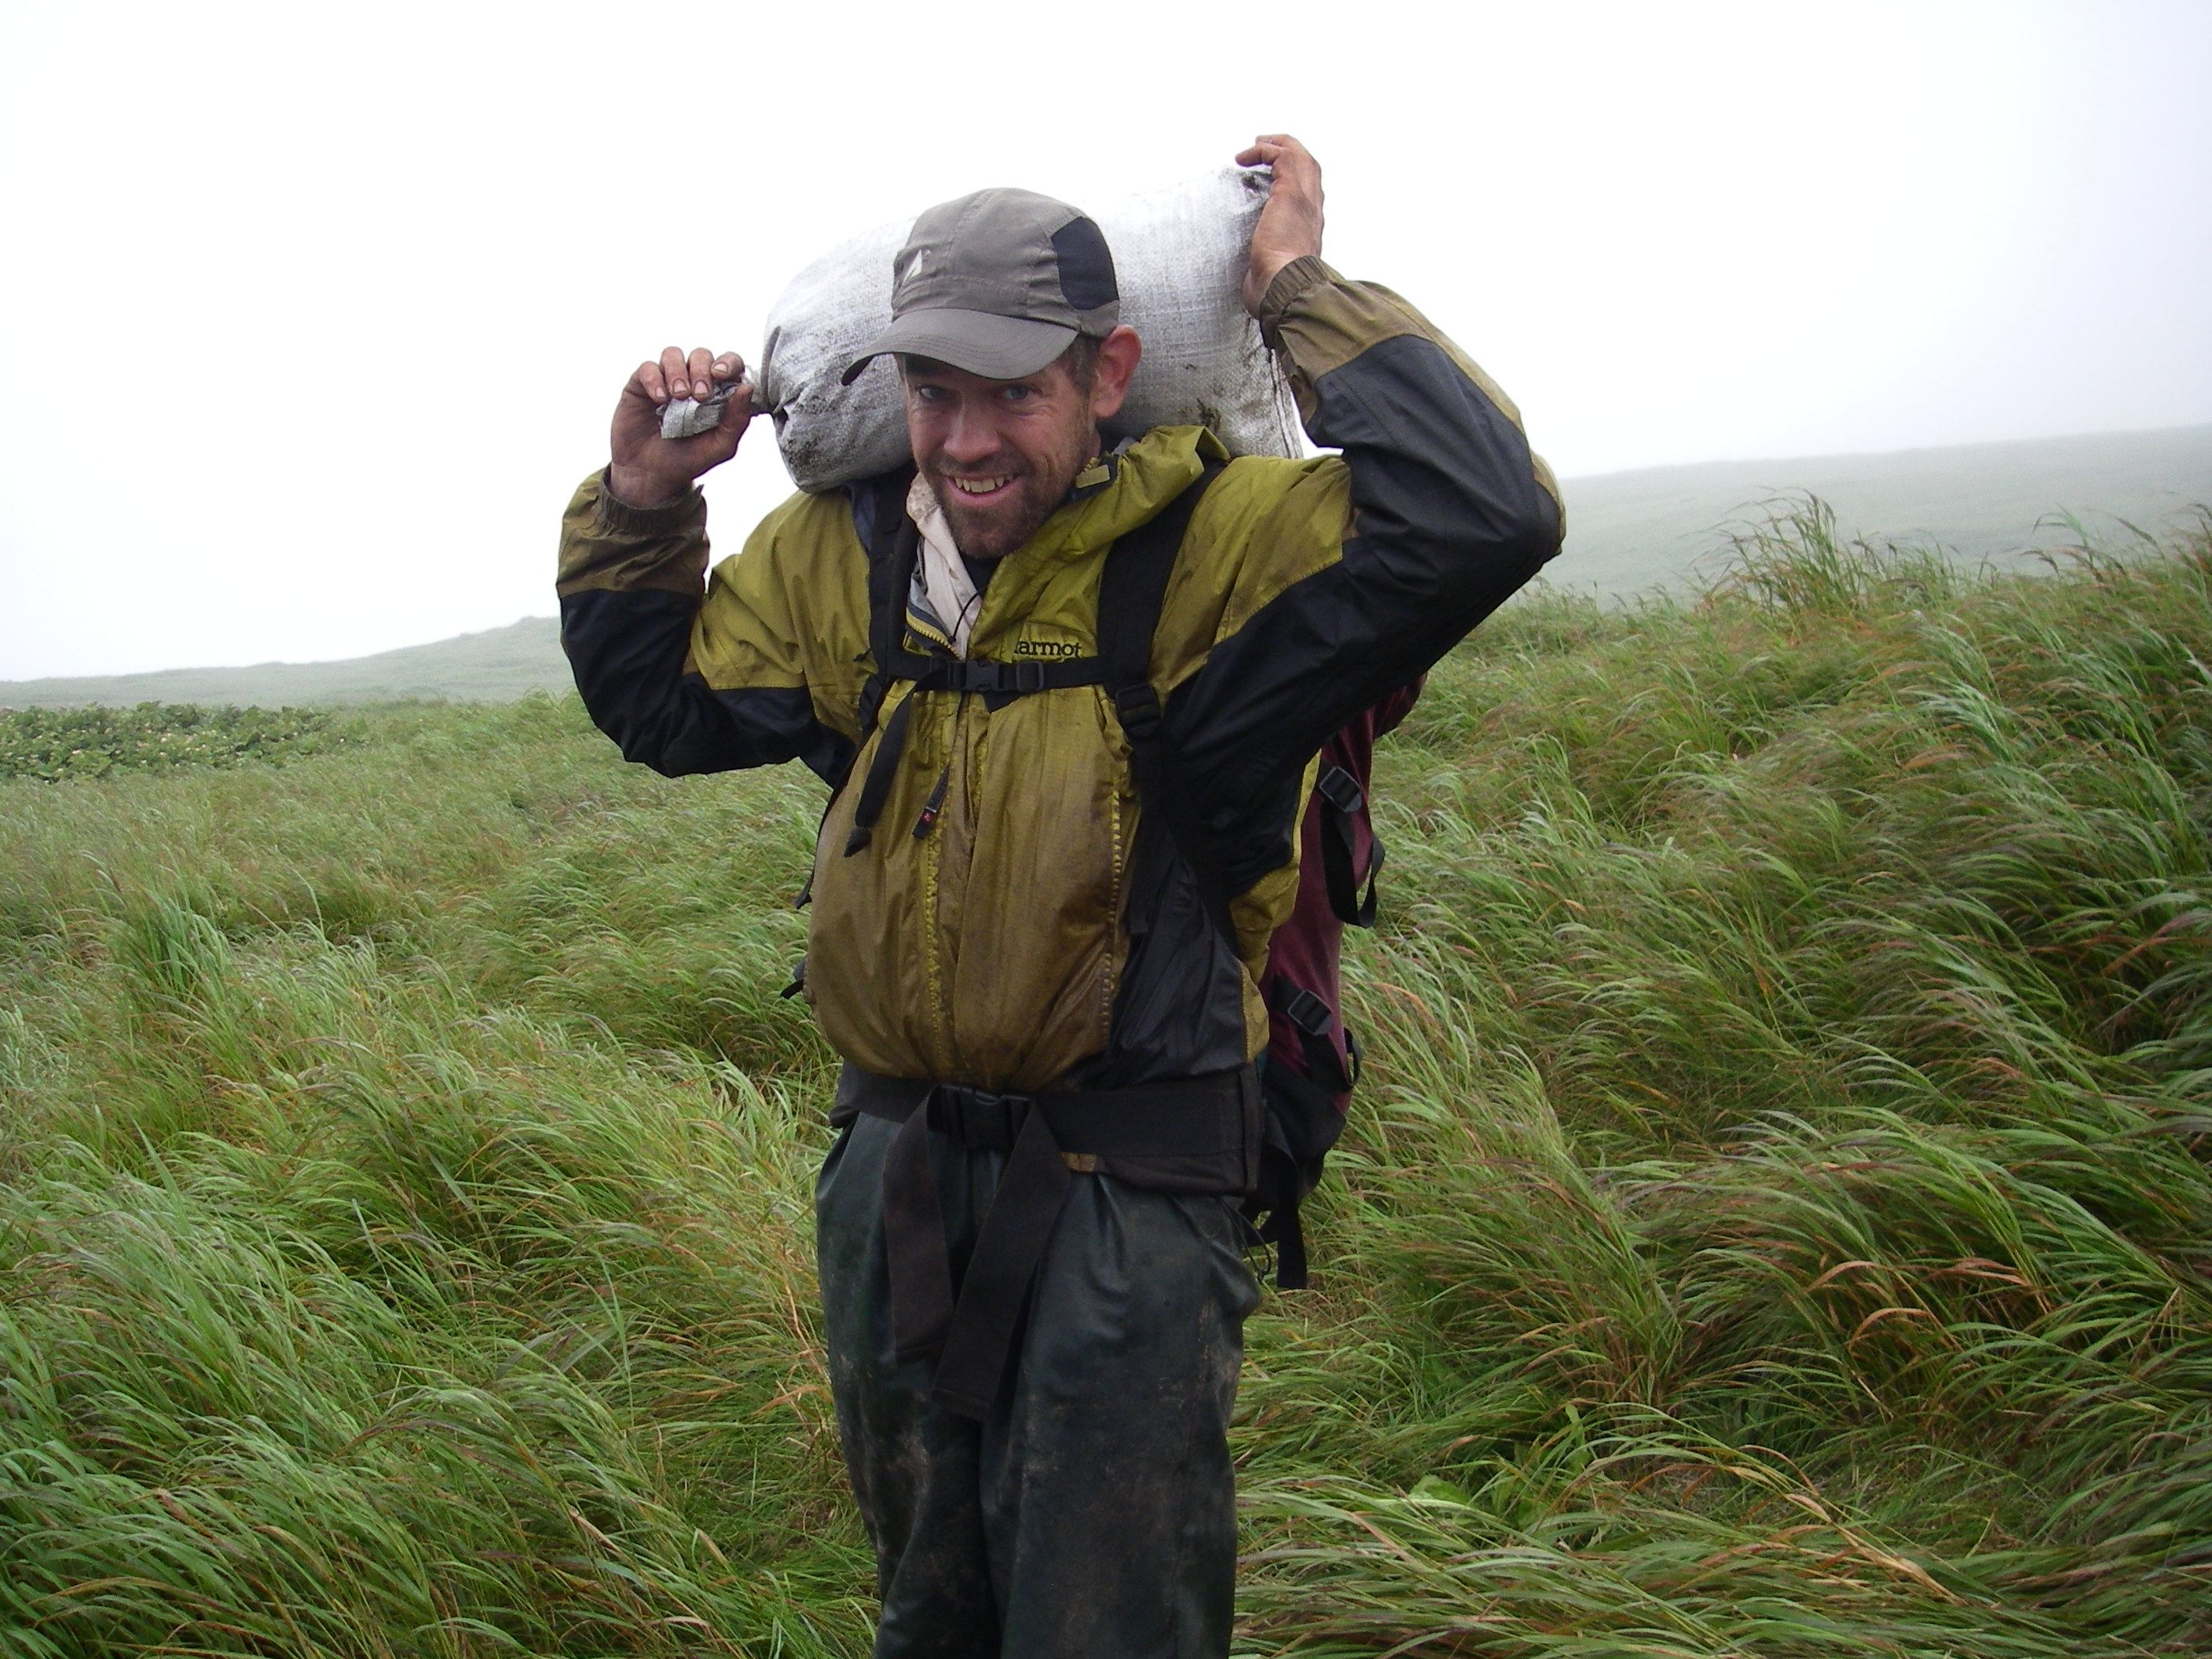 Etnier excavating a midden in the North Pacific's Kuril Islands.